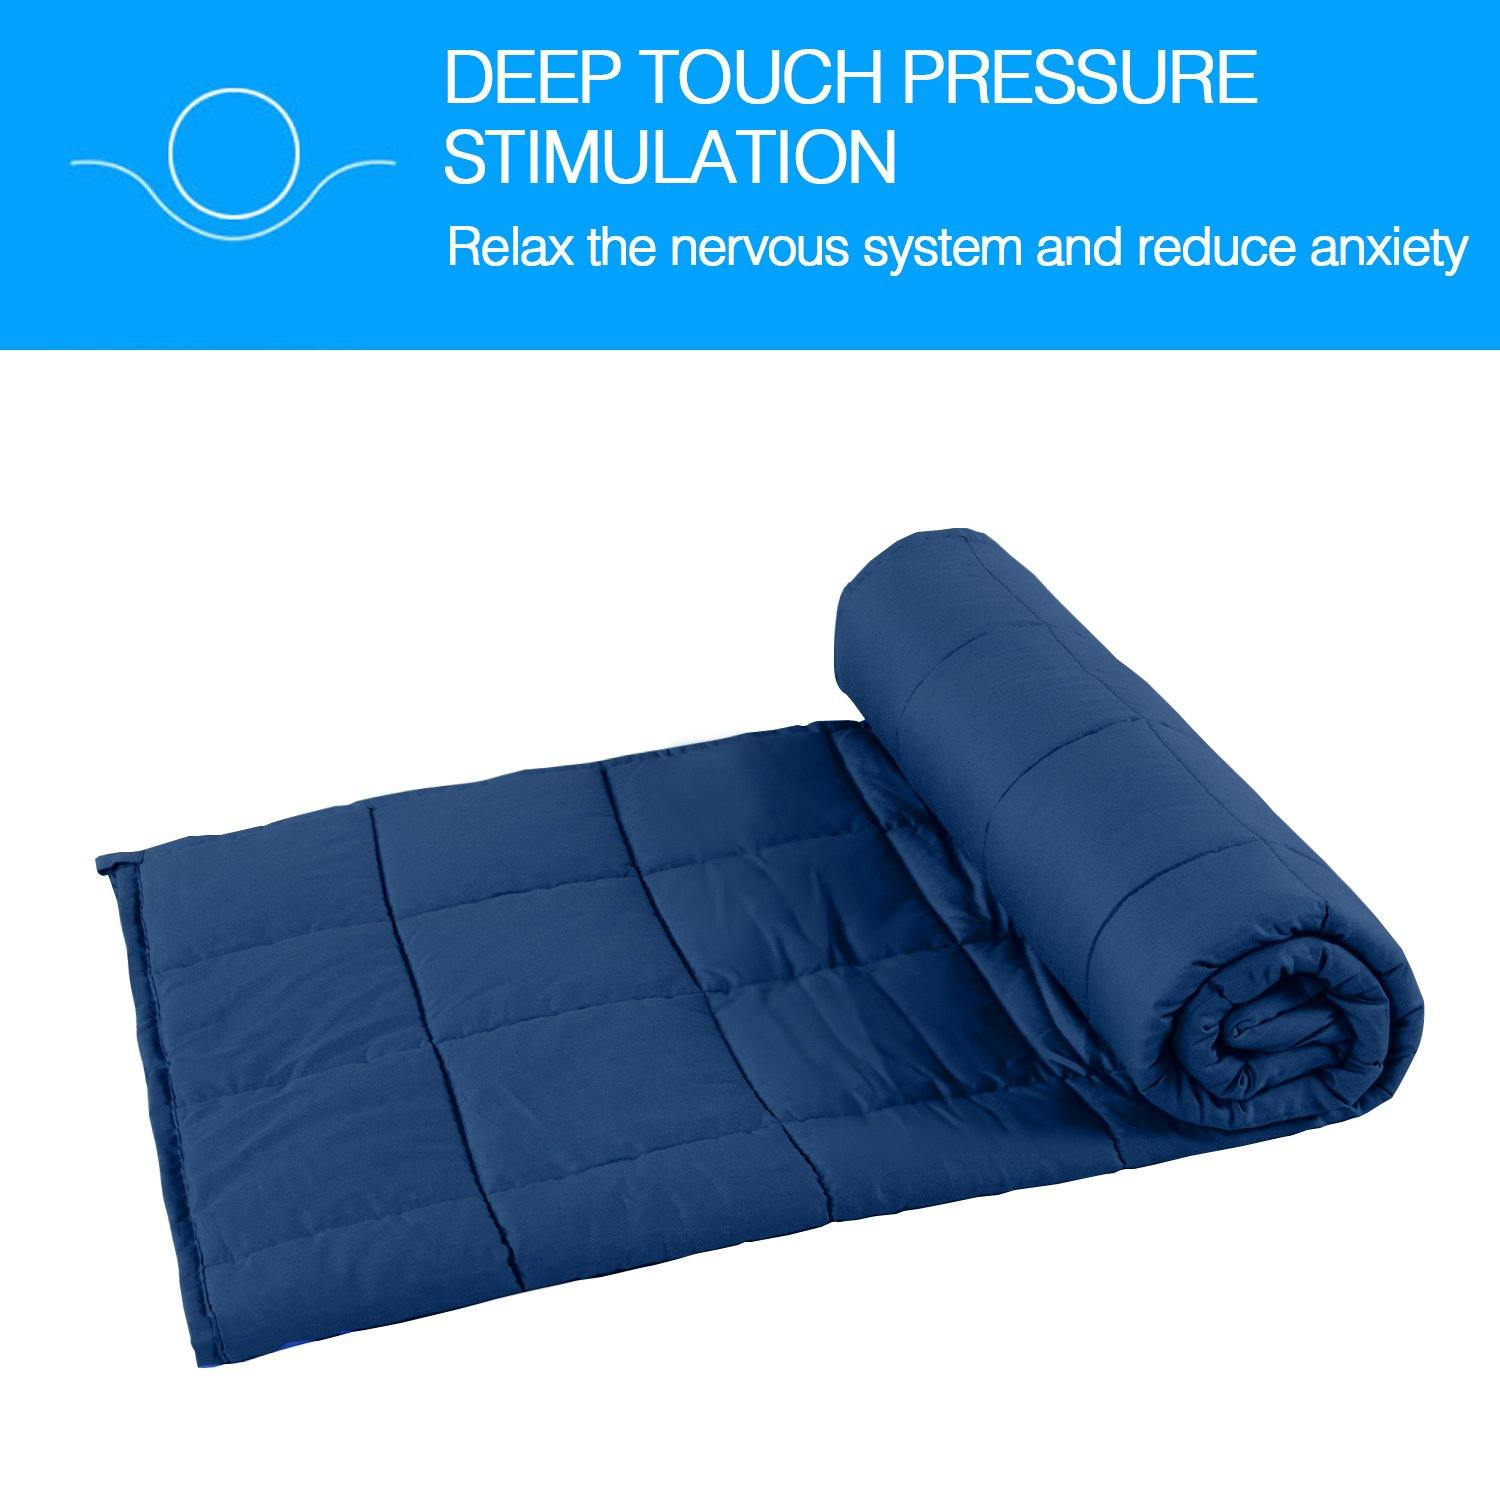 NTBAY Cotton Weighted Blanket Navy Blue 5lbs, 7lbs, 12lbs,15lbs,25lbs